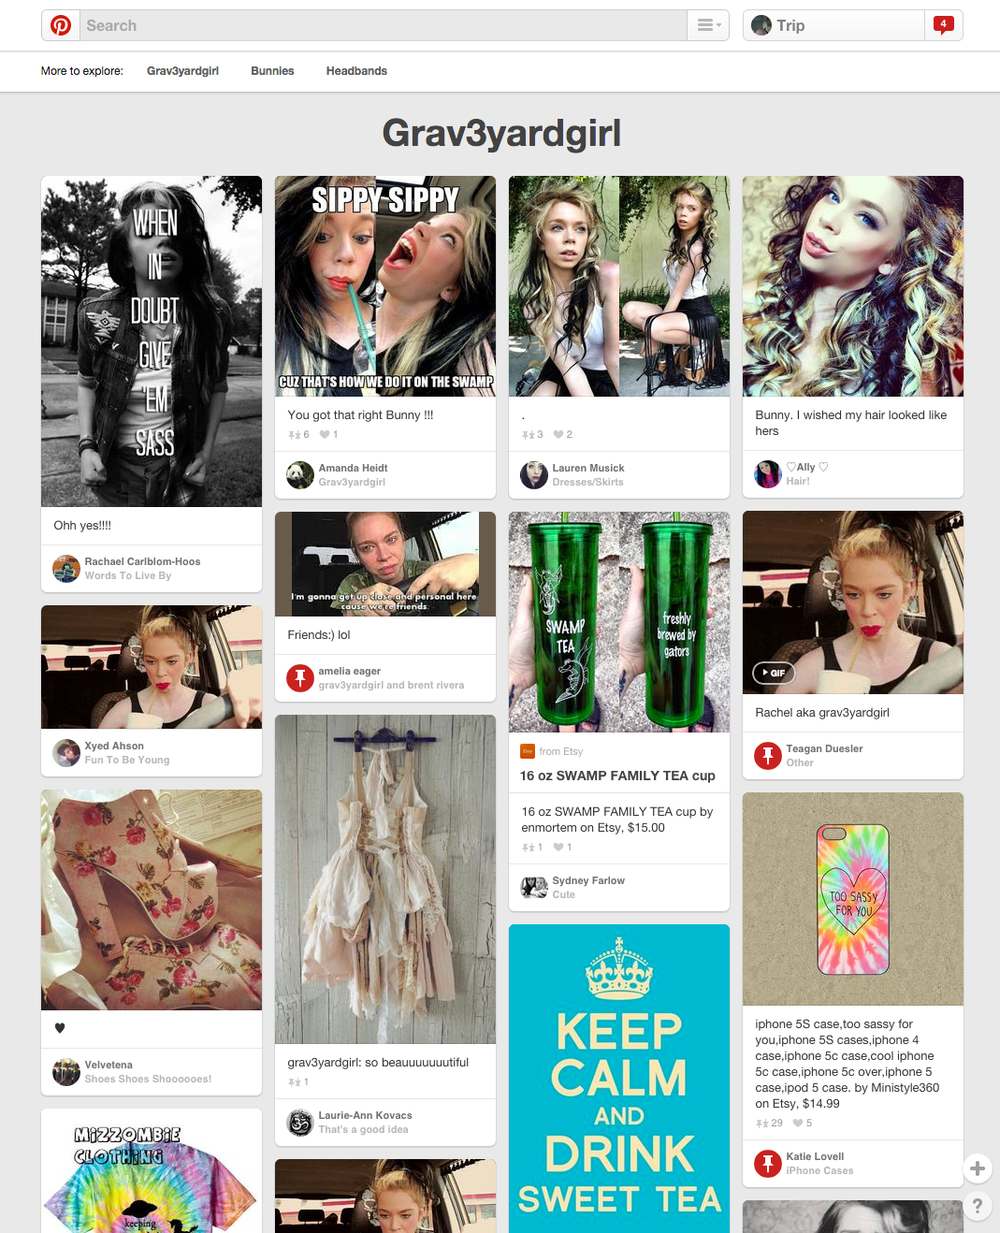 Grav3yardgirl_on_Pinterest_1.png